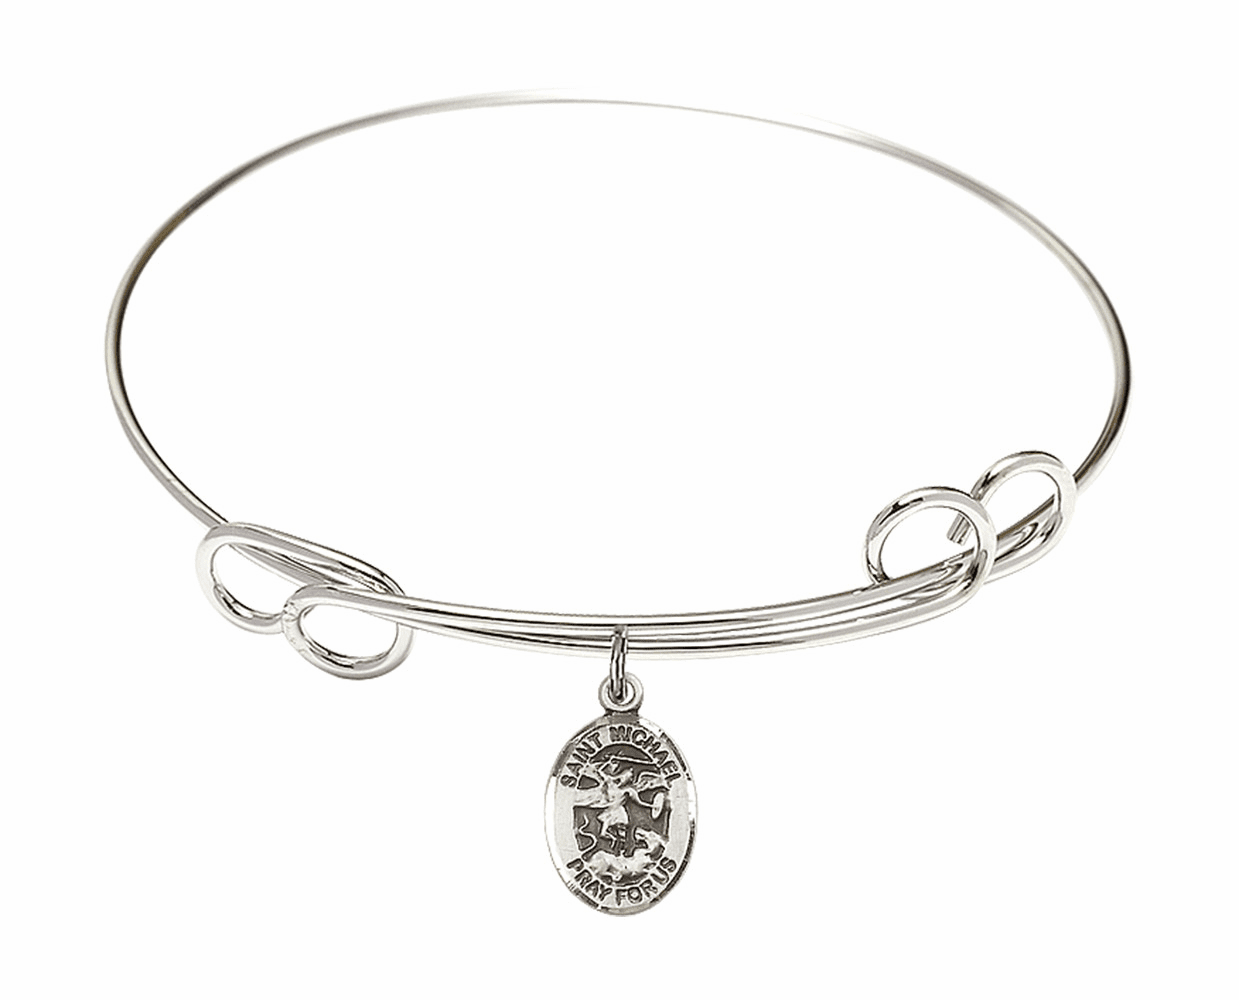 Round Loop St Michael the Archangel Bangle Charm Bracelet by Bliss